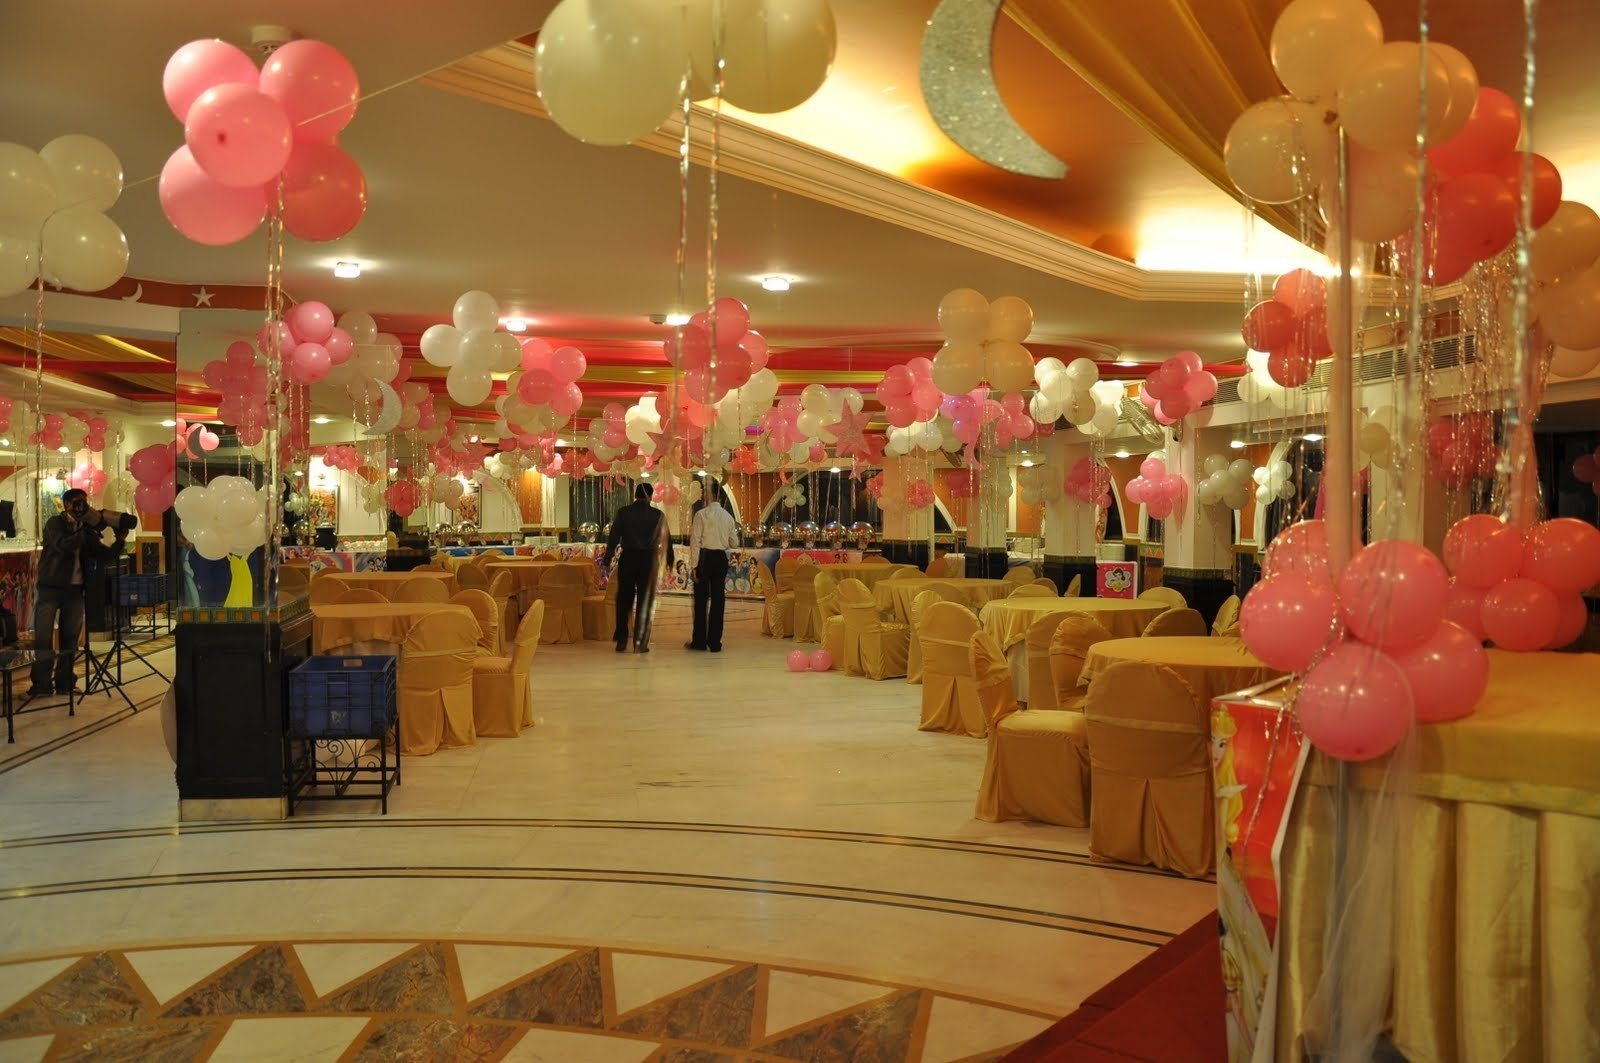 10 Famous Birthday Decoration Ideas For Adults birthday party decorating ideas adults decorations tierra este 5 2020